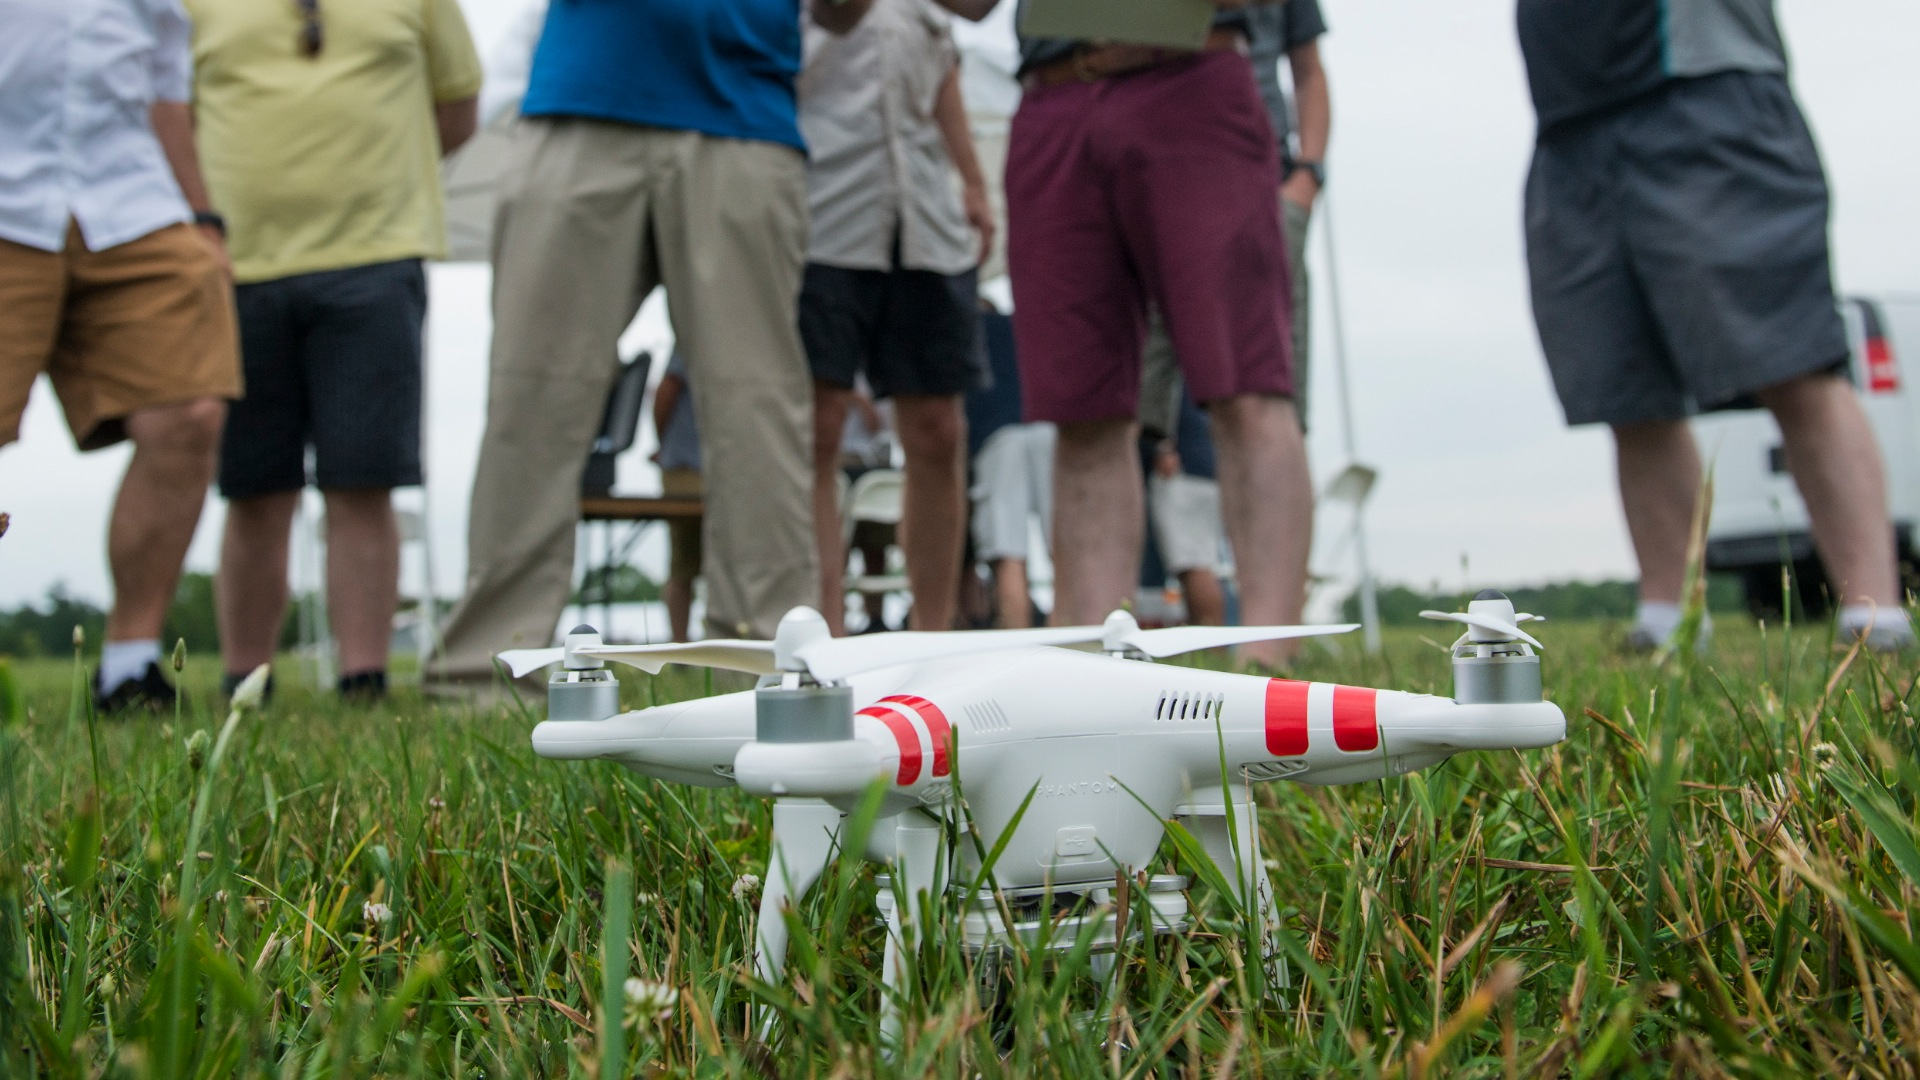 Rogue toy drones are interfering with military operations